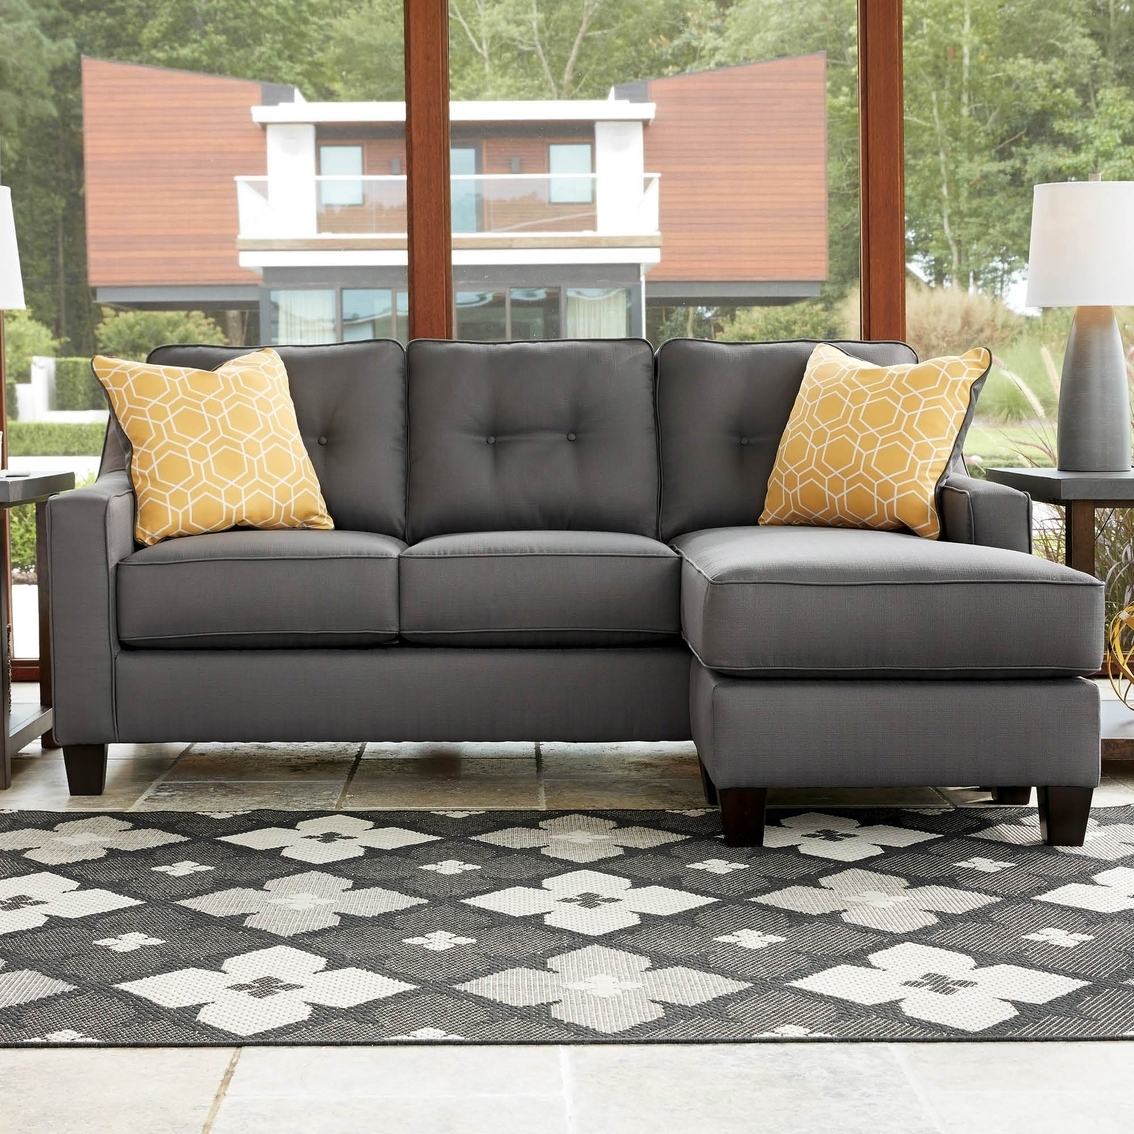 Favorite Chaise Couches Regarding Benchcraft Aldie Nuvella Sofa Chaise (View 10 of 15)